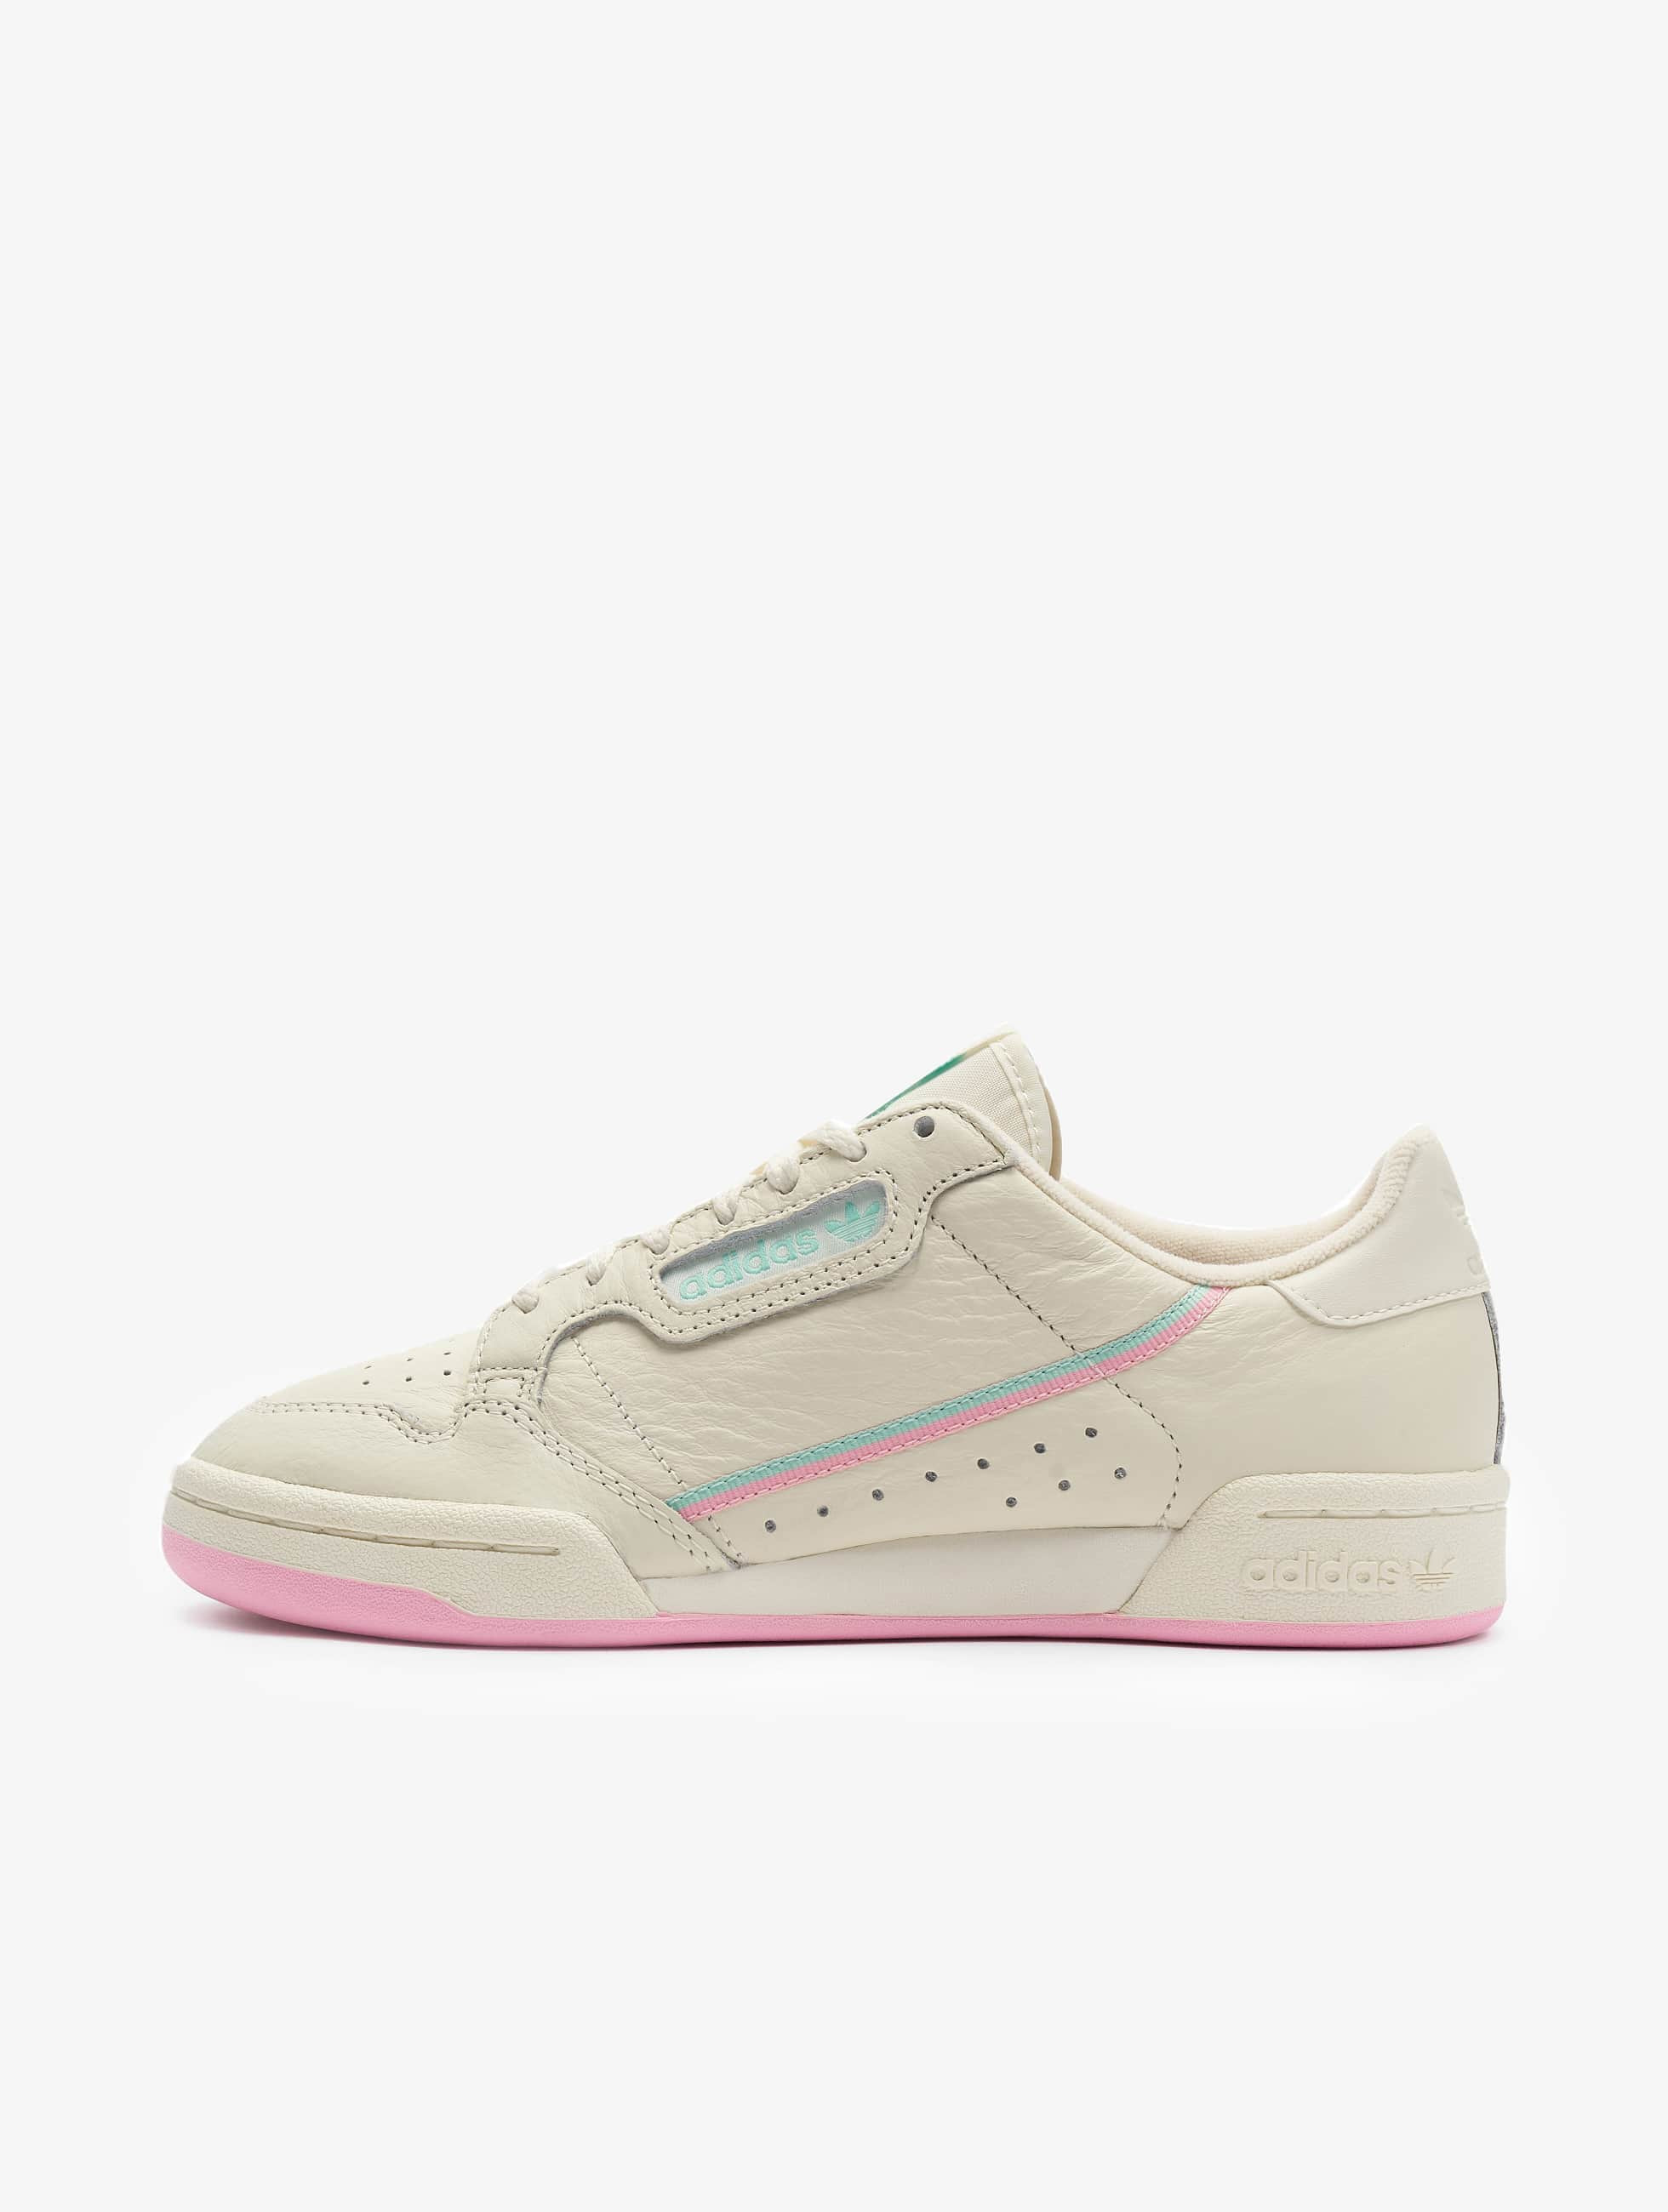 Adidas Originals Continental 80 Sneakers Off WhiteTrue PinkClear Mint